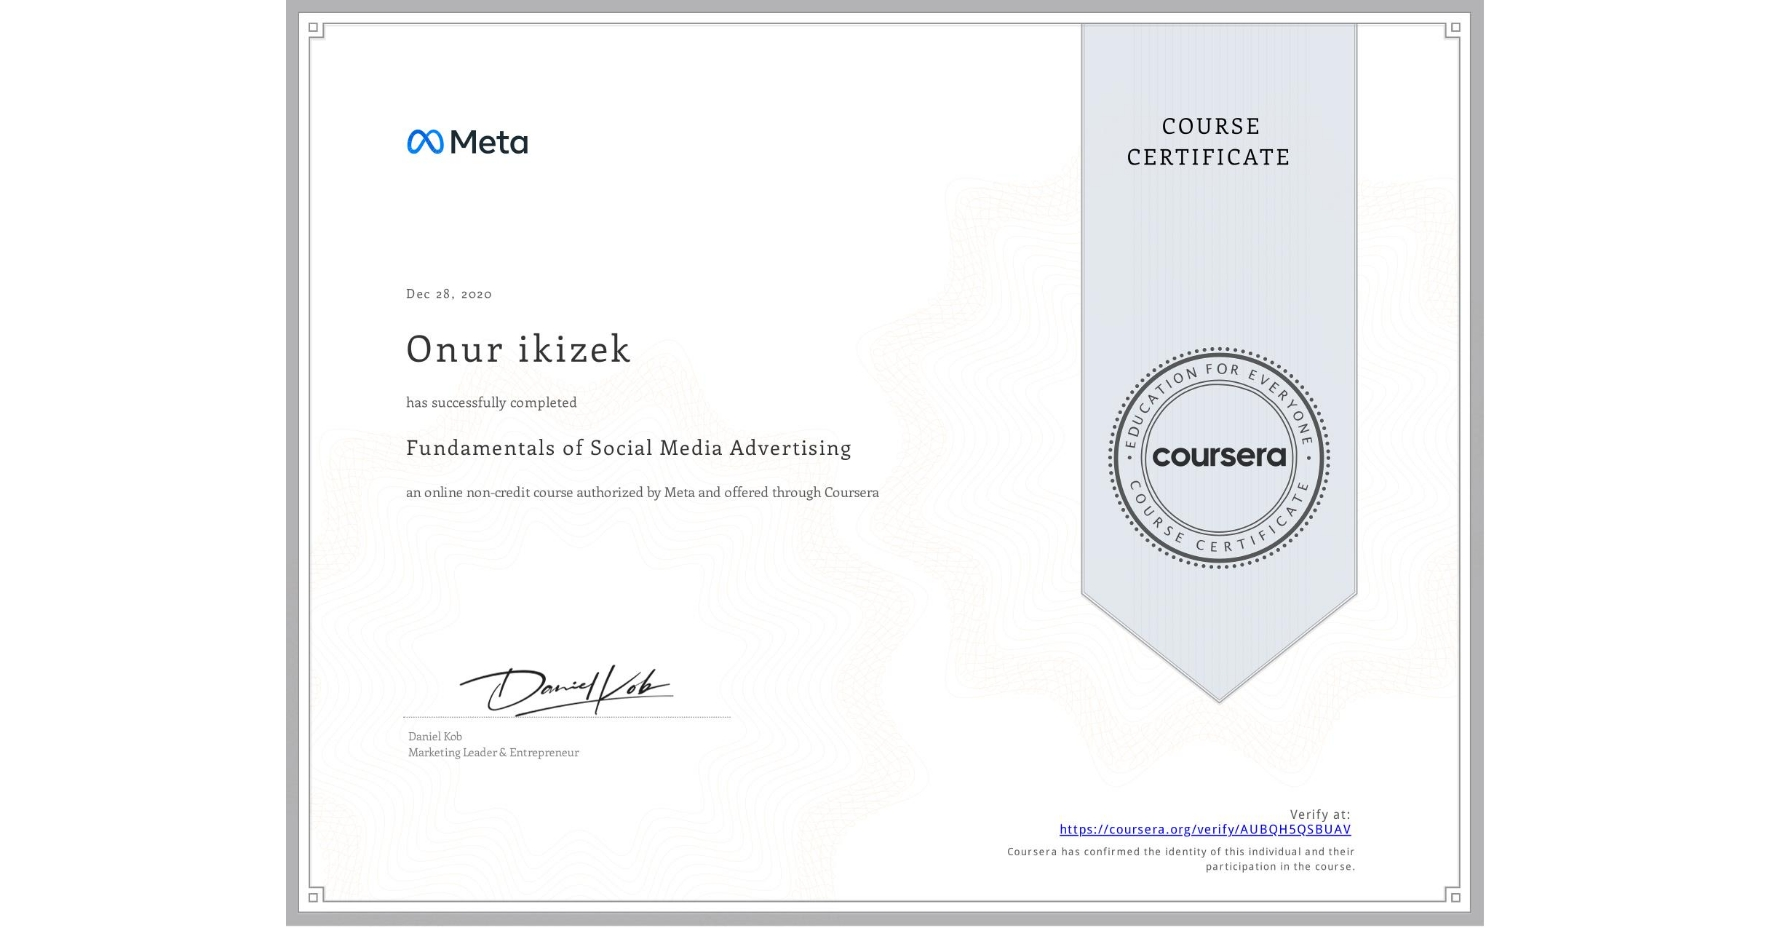 View certificate for Onur ikizek, Fundamentals of Social Media Advertising, an online non-credit course authorized by Facebook and offered through Coursera